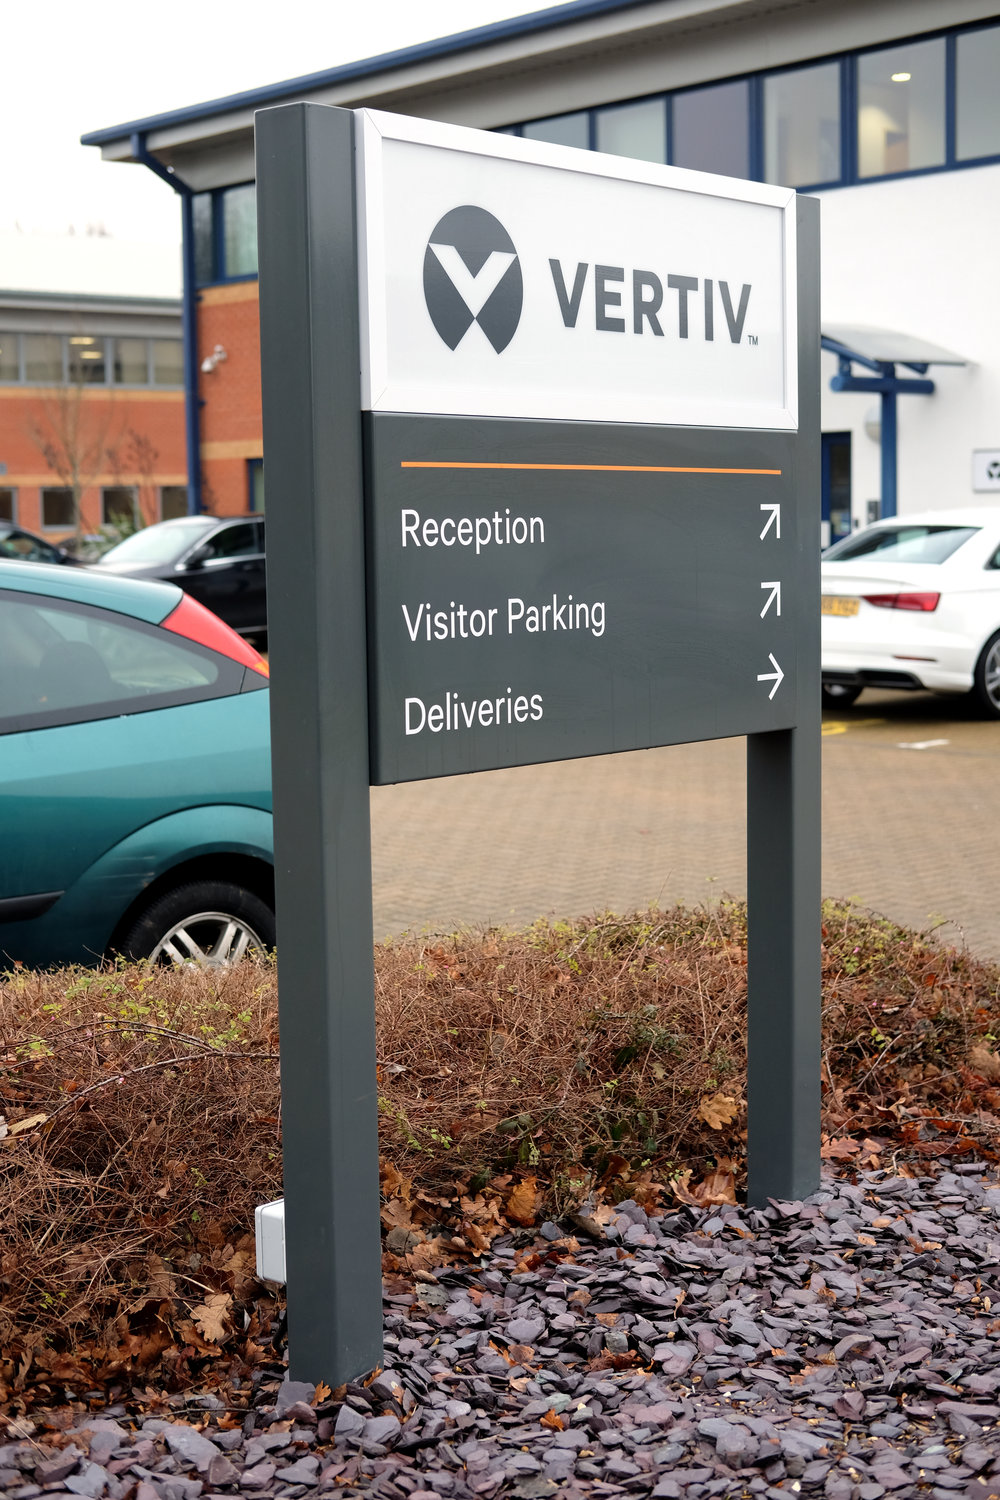 We were approached by Vertiv to rebrand the Emerson Network Power sites across the UK and Ireland, after Vertiv acquired the business. We had a short timeframe to complete this project, from survey through to install, including illuminated tray signs, internal slat systems and monoliths